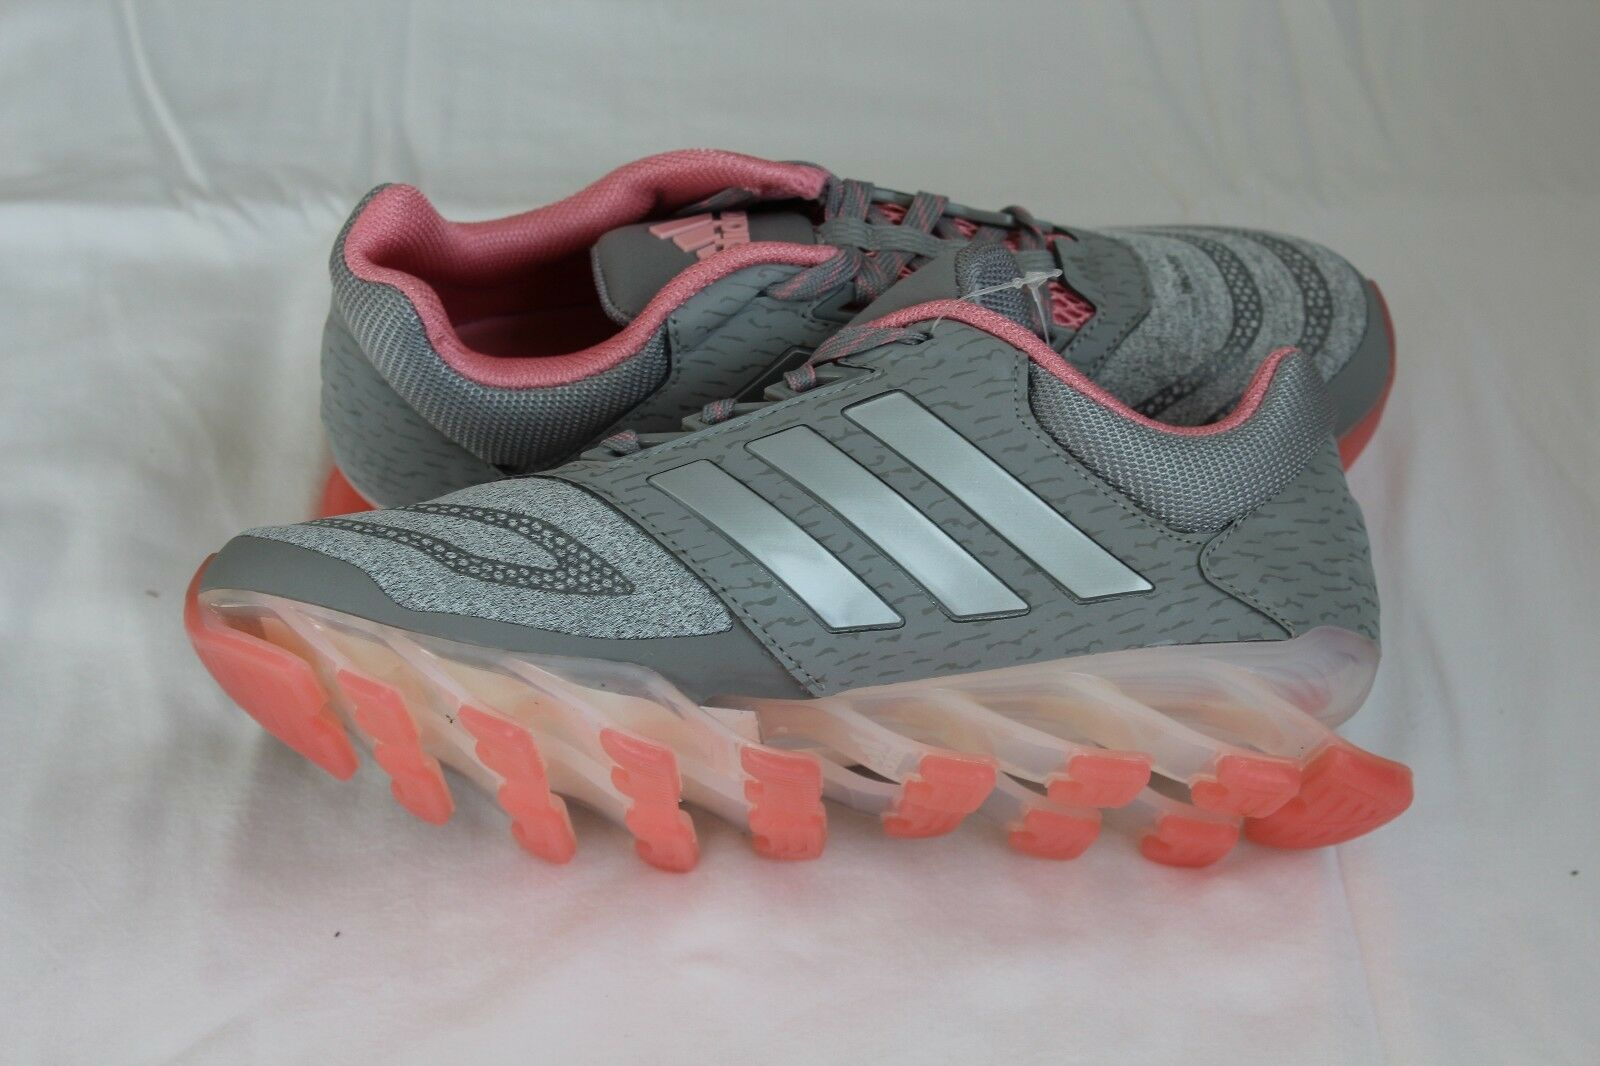 ADIDAS LADIES SPRINGBLADE DRIVE 2 6 TRAINERS UK 3.5 - 6 2 d3c41c